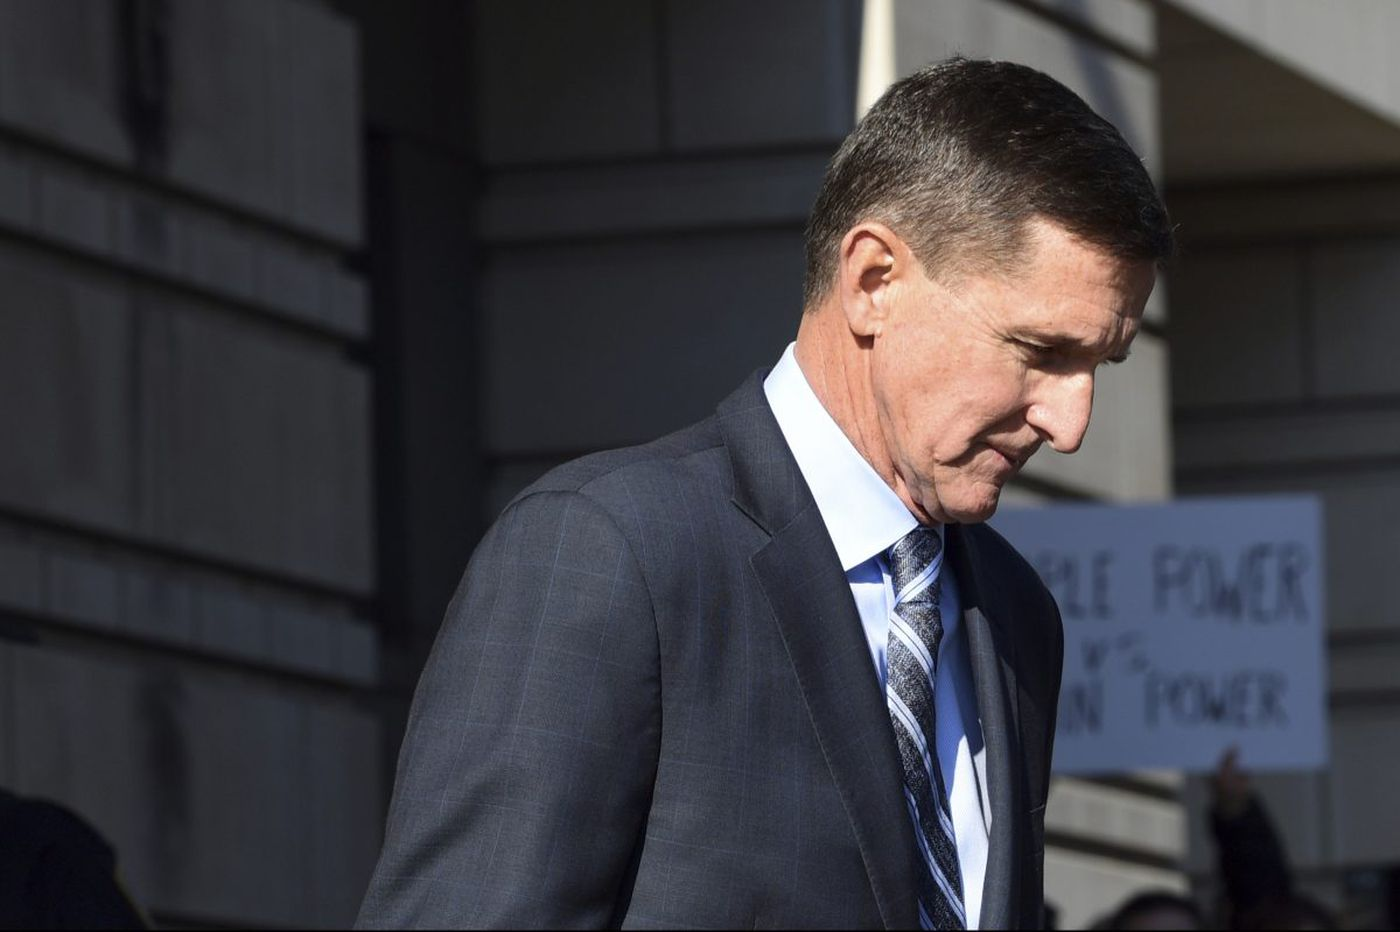 Trump legal team readies attack on Flynn's credibility